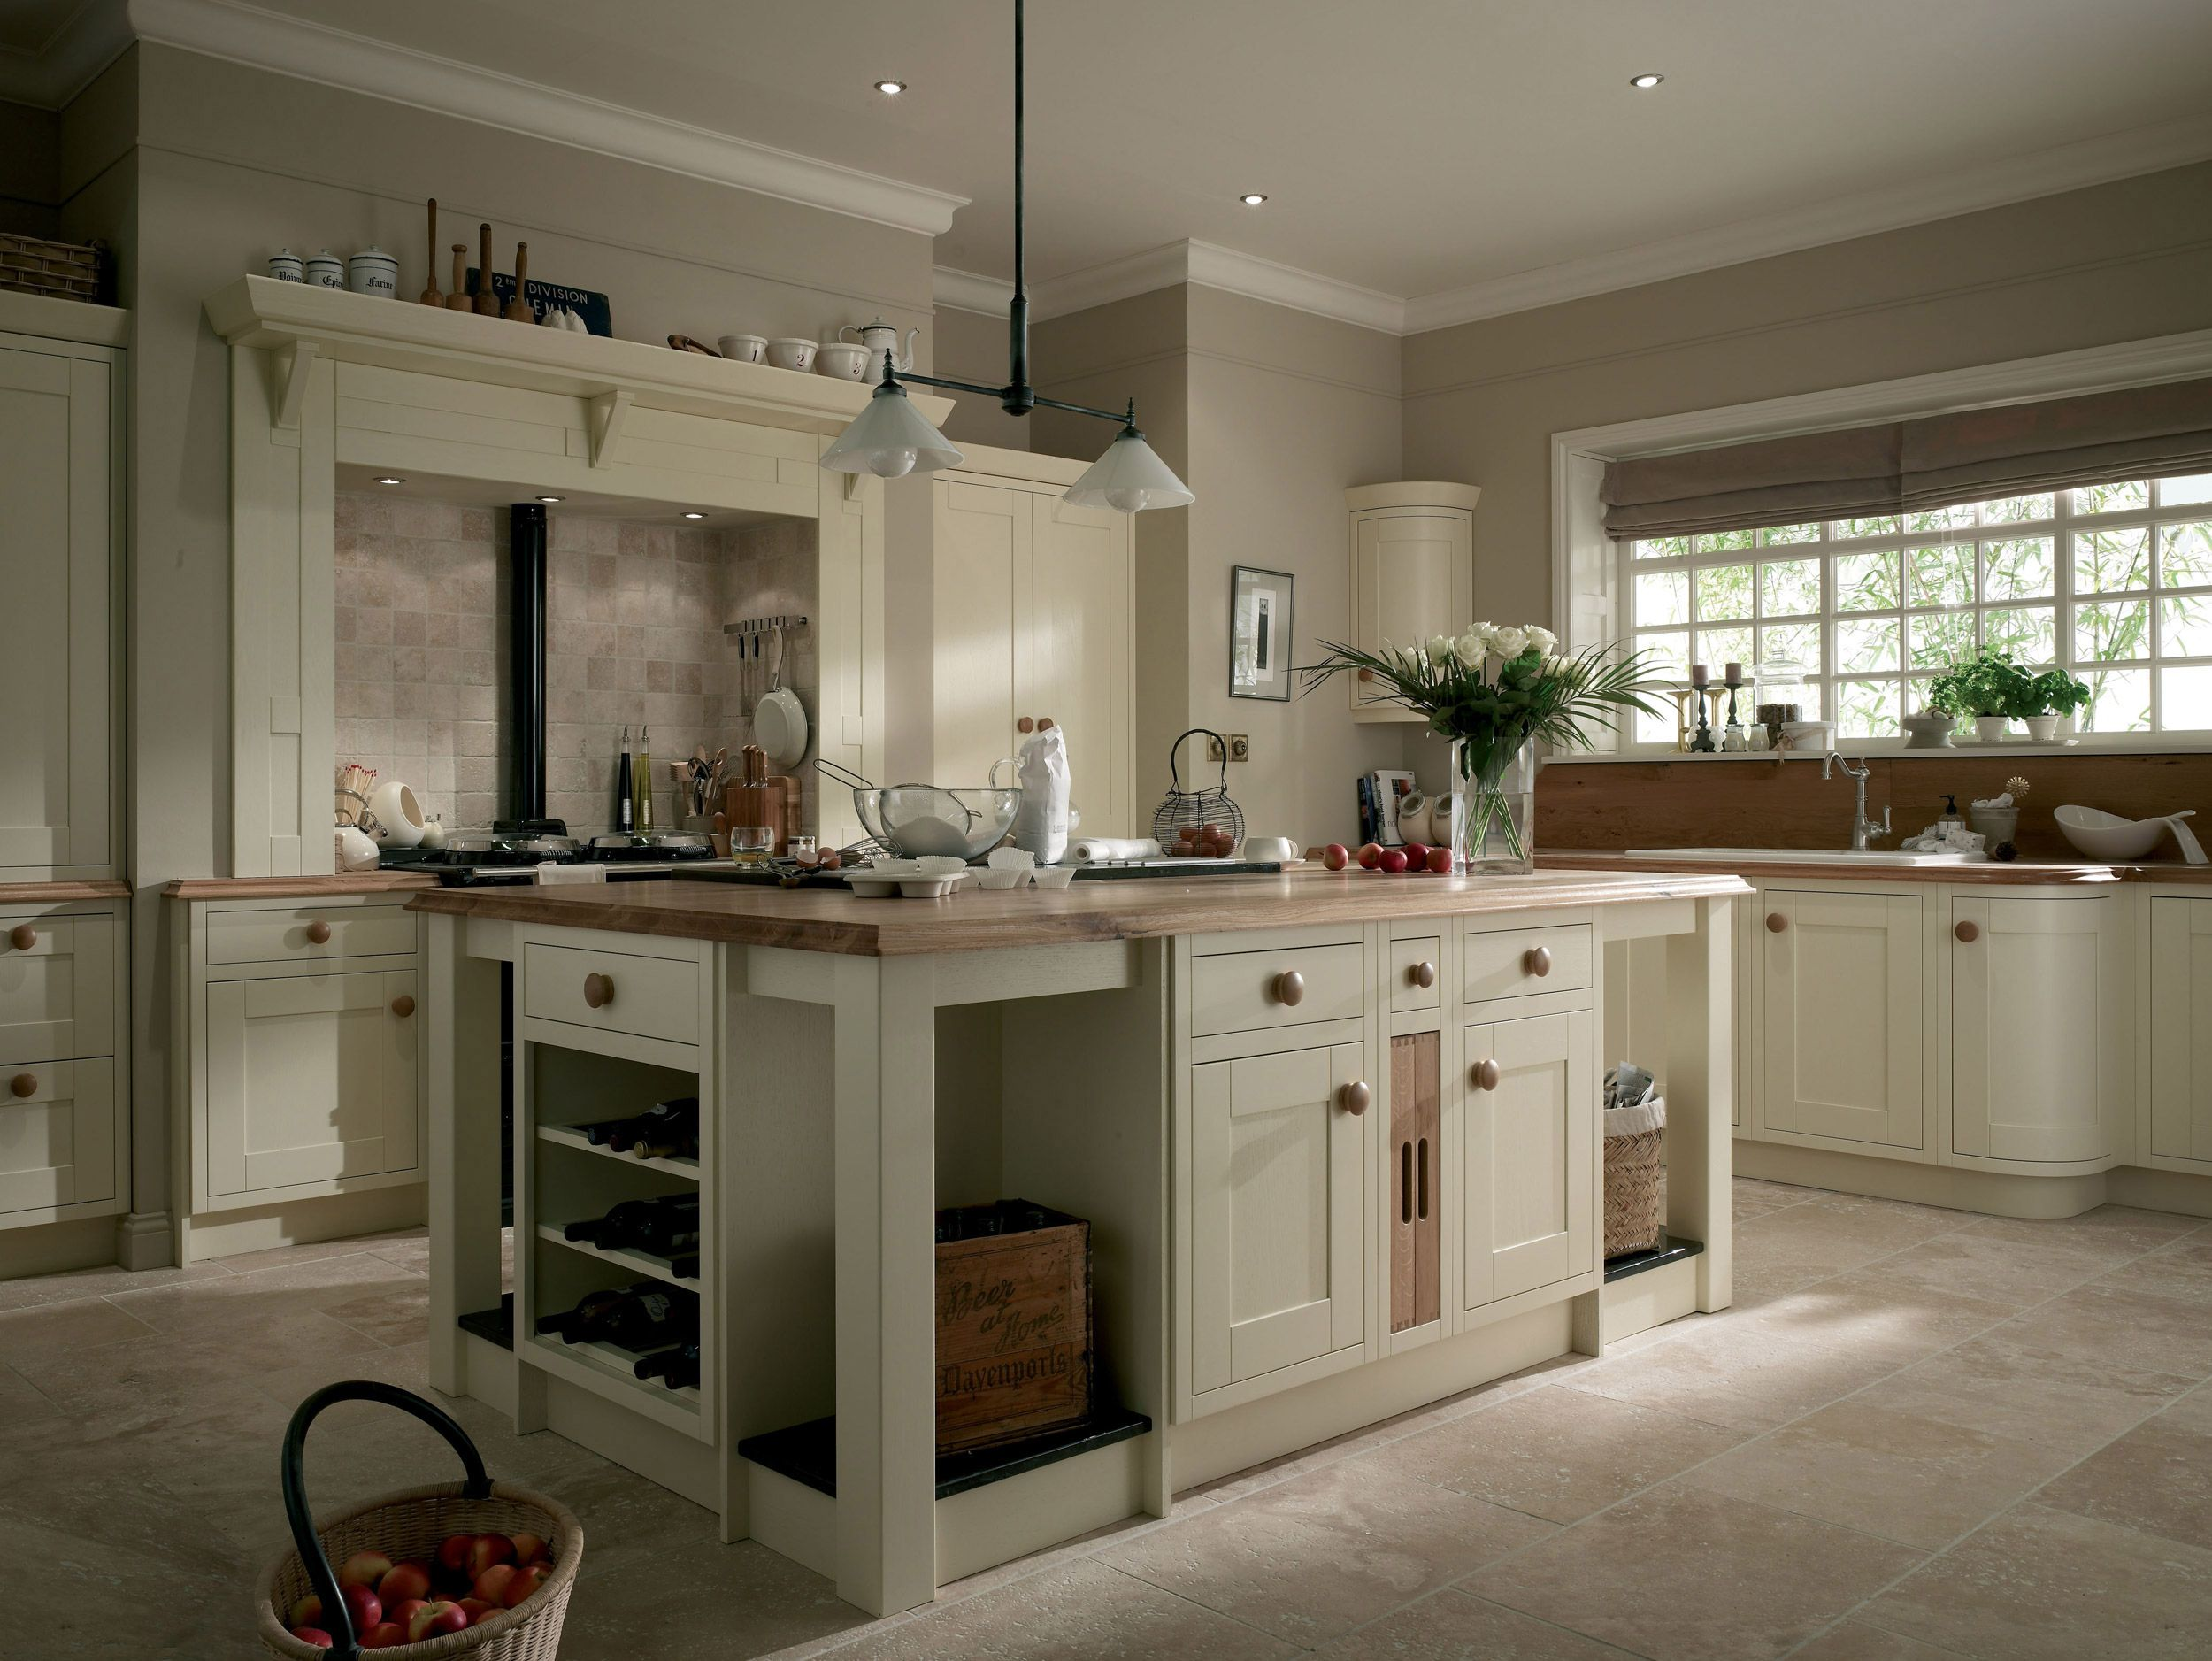 kitchen ideas country kitchen ideas Kitchen Designs Wonderful Warm Neutral Ivory Classic Country Curved Units and Painted Wood Kitchen Design